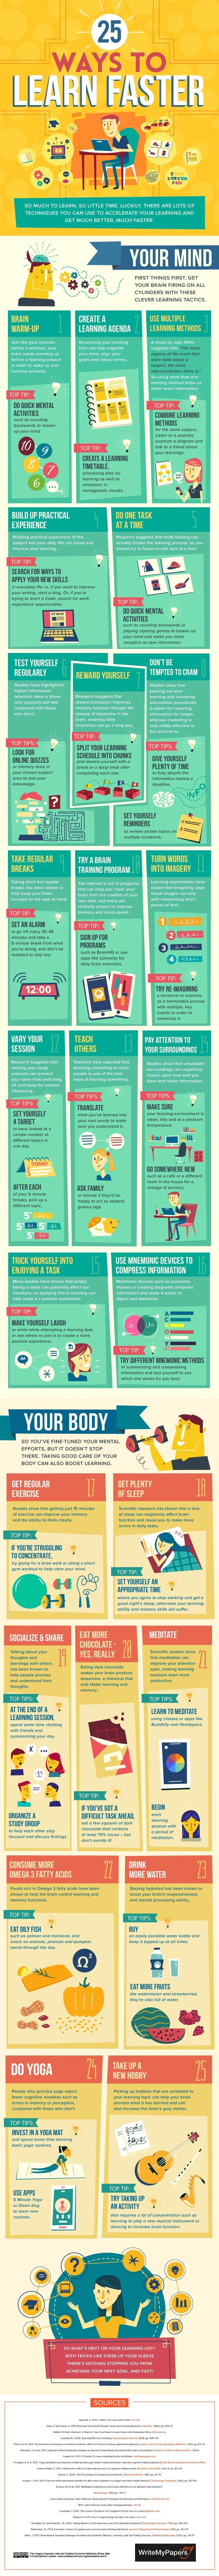 25 Ways to Learn Faster (Infographic) {Hilfe im St…